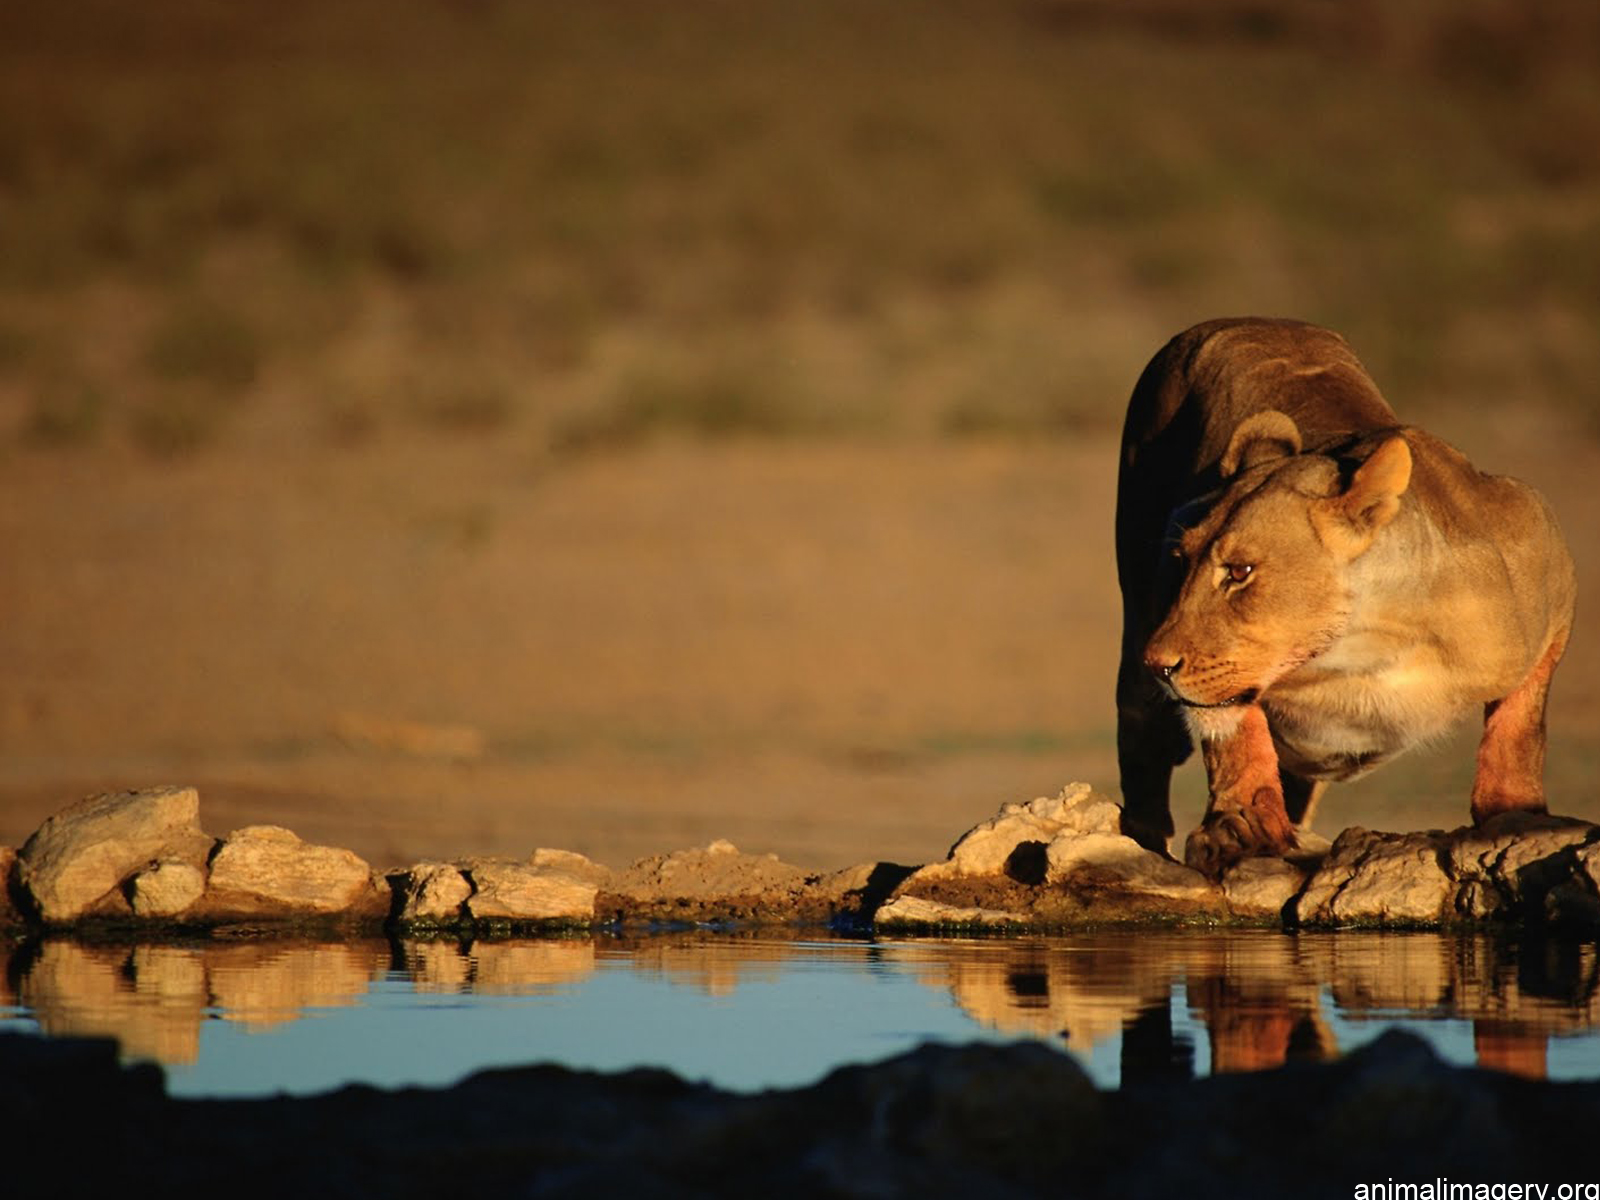 Lion Hd Wallpapers: Lion HD Wallpapers African Lions Pictures